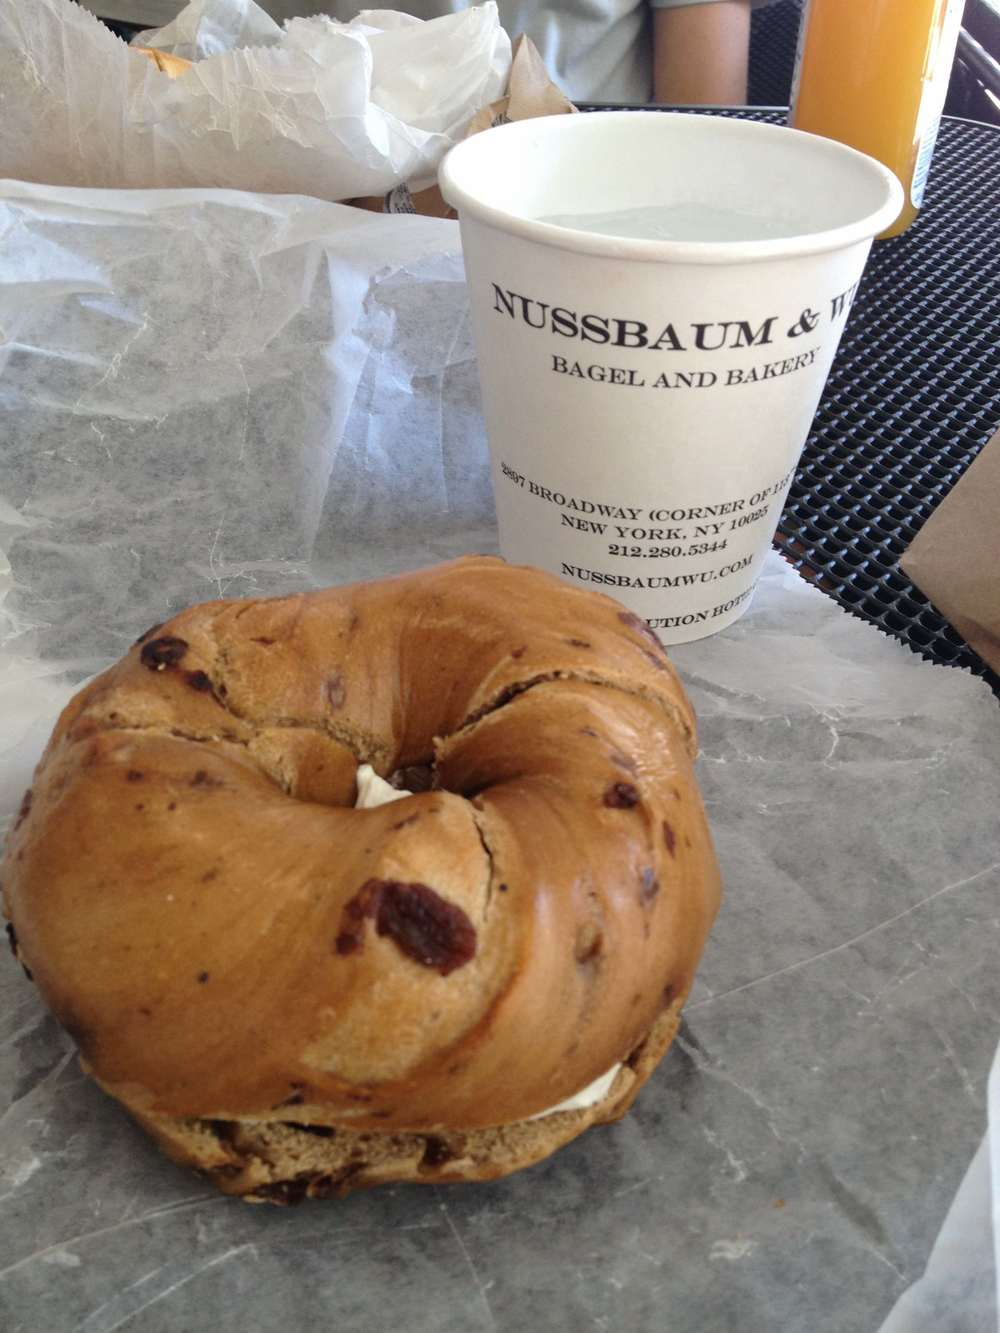 A bagel and coffee from Nussbaum & Wu, my favorite NYC deli